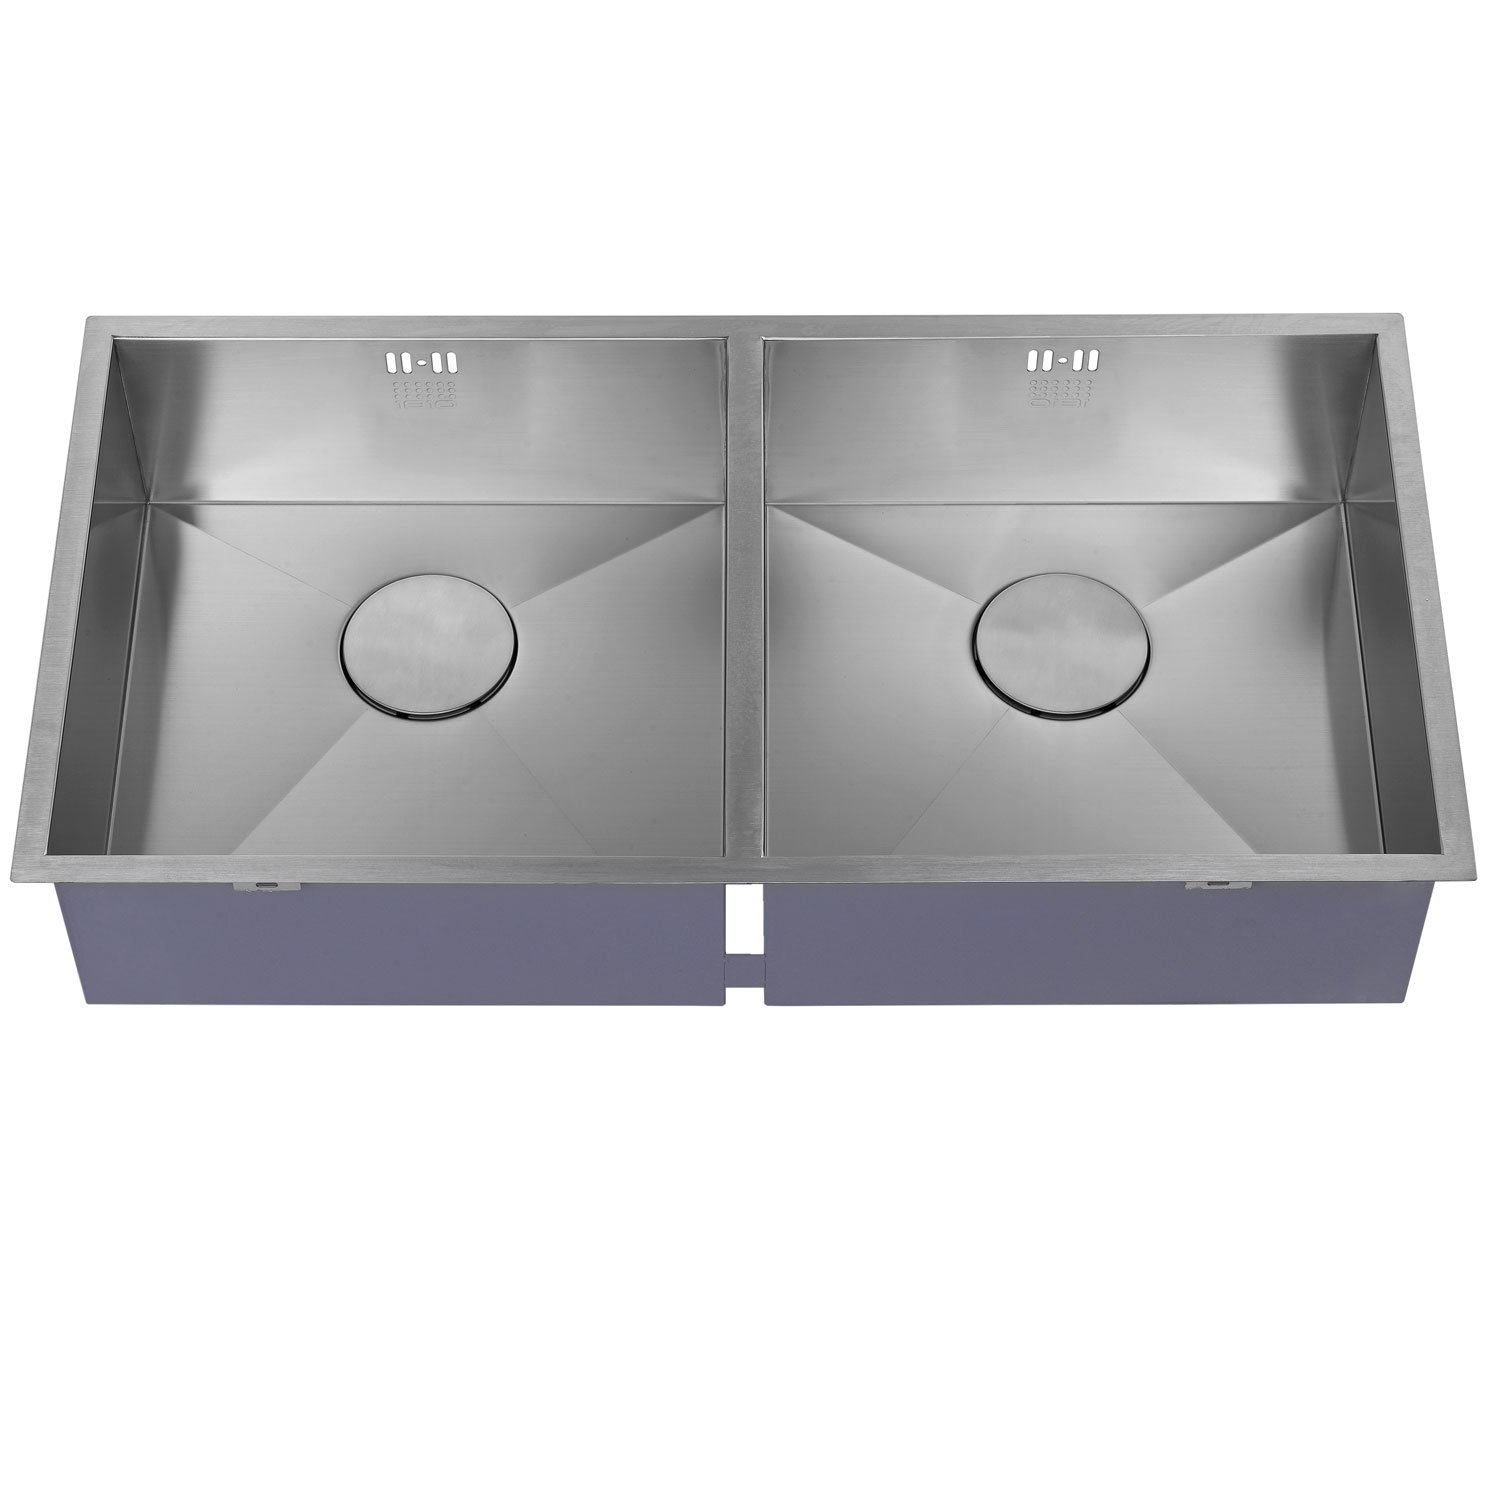 The 1810 Company Zenduo 400/400U 2.0 Bowl Kitchen Sink - Stainless Steel-1